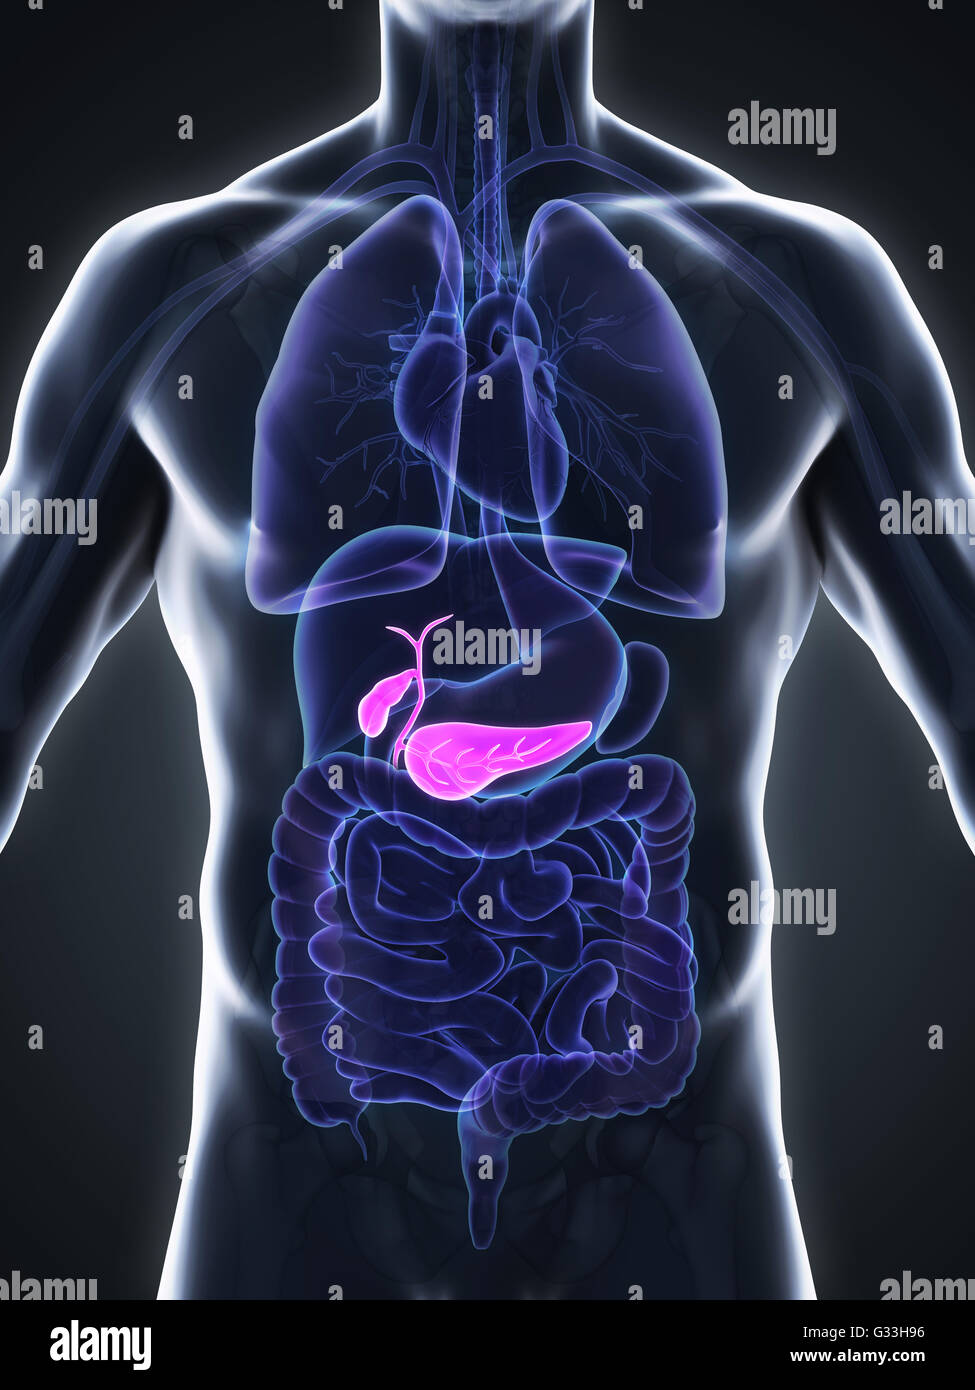 Human Gallbladder And Pancreas Anatomy Stock Photo 105185618 Alamy